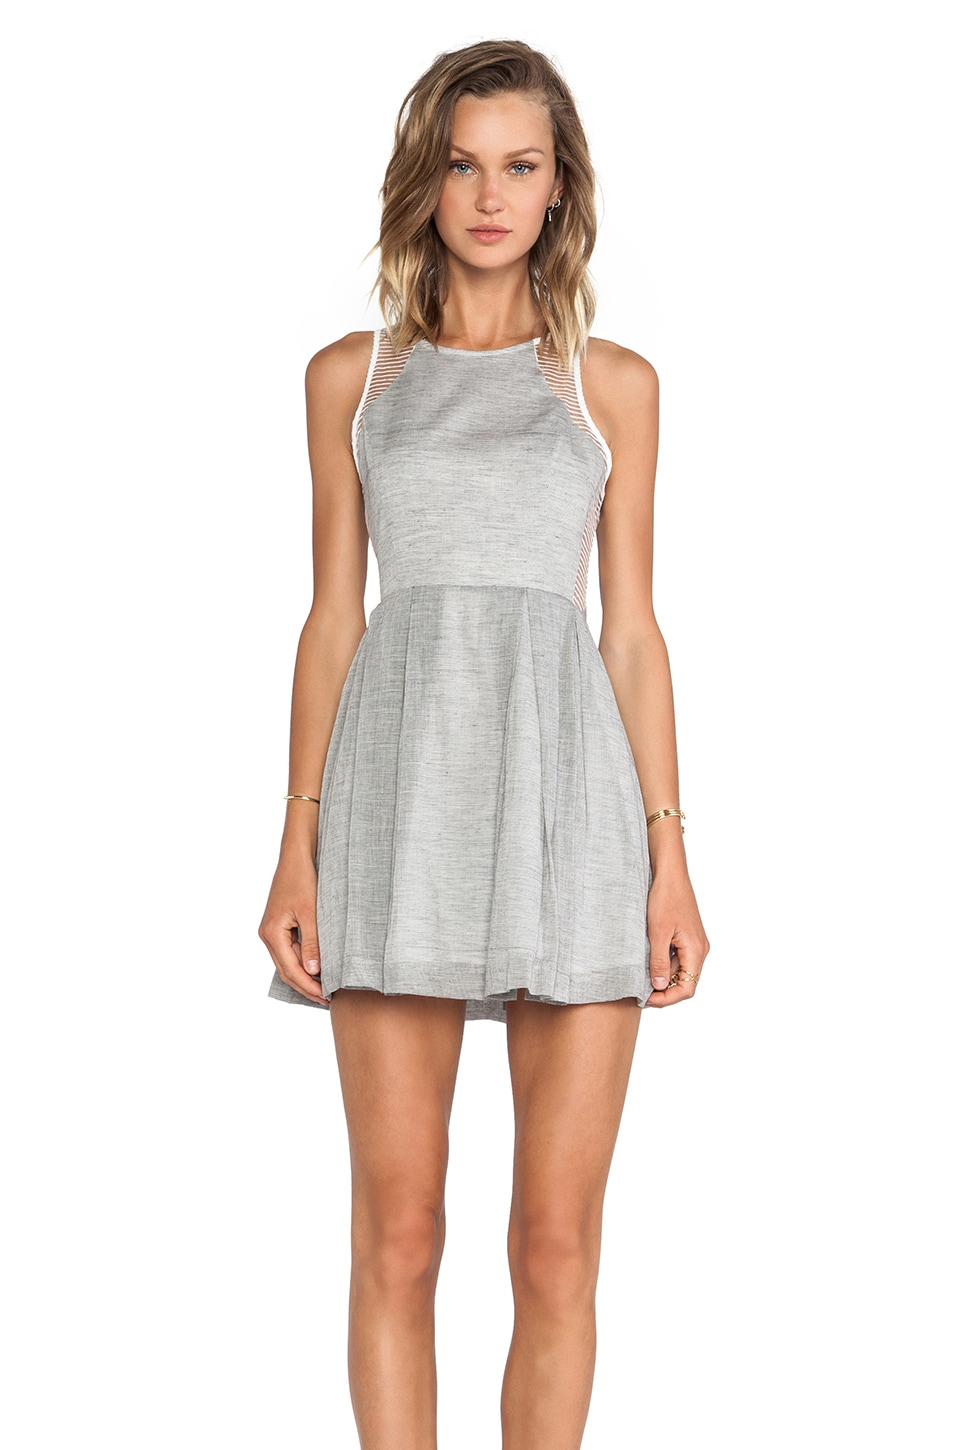 Finders Keepers Dr. Love Dress in Black/Sheer White